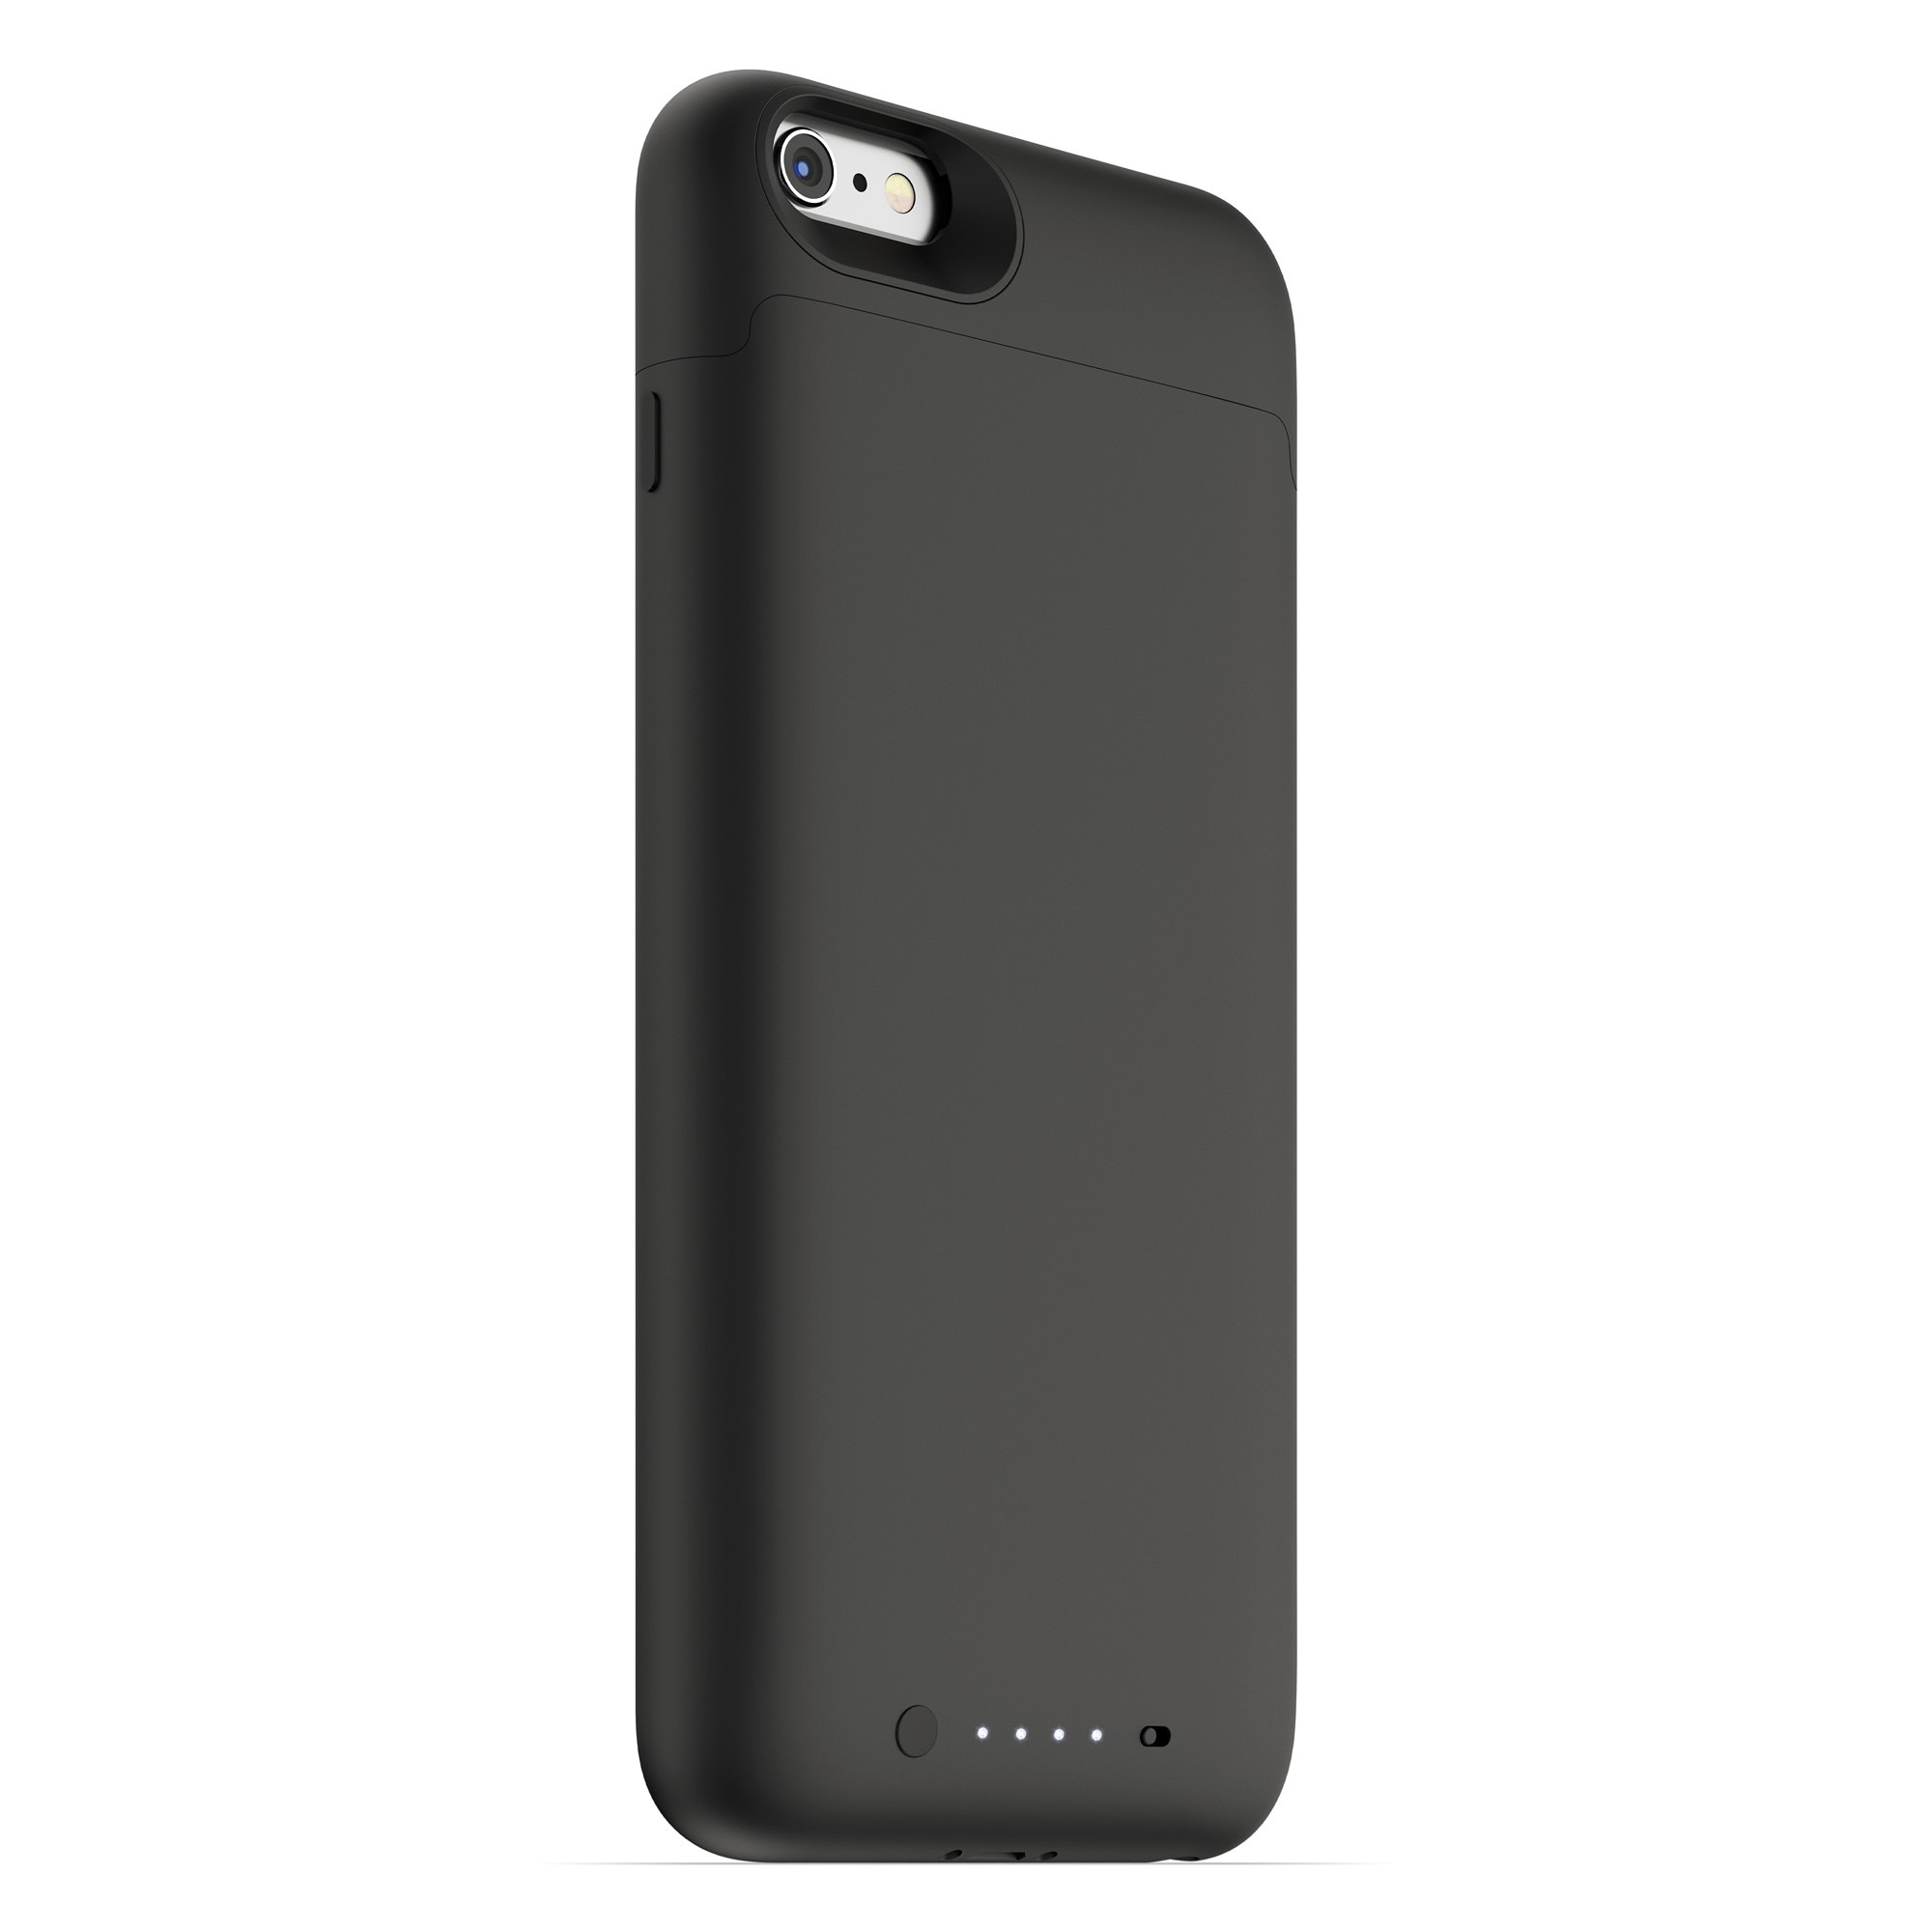 mophie juice pack for iphone 6s plus 6 plus 2,600mah, blackmophie juice pack for iphone 6s plus 6 plus 2,600mah, black walmart com